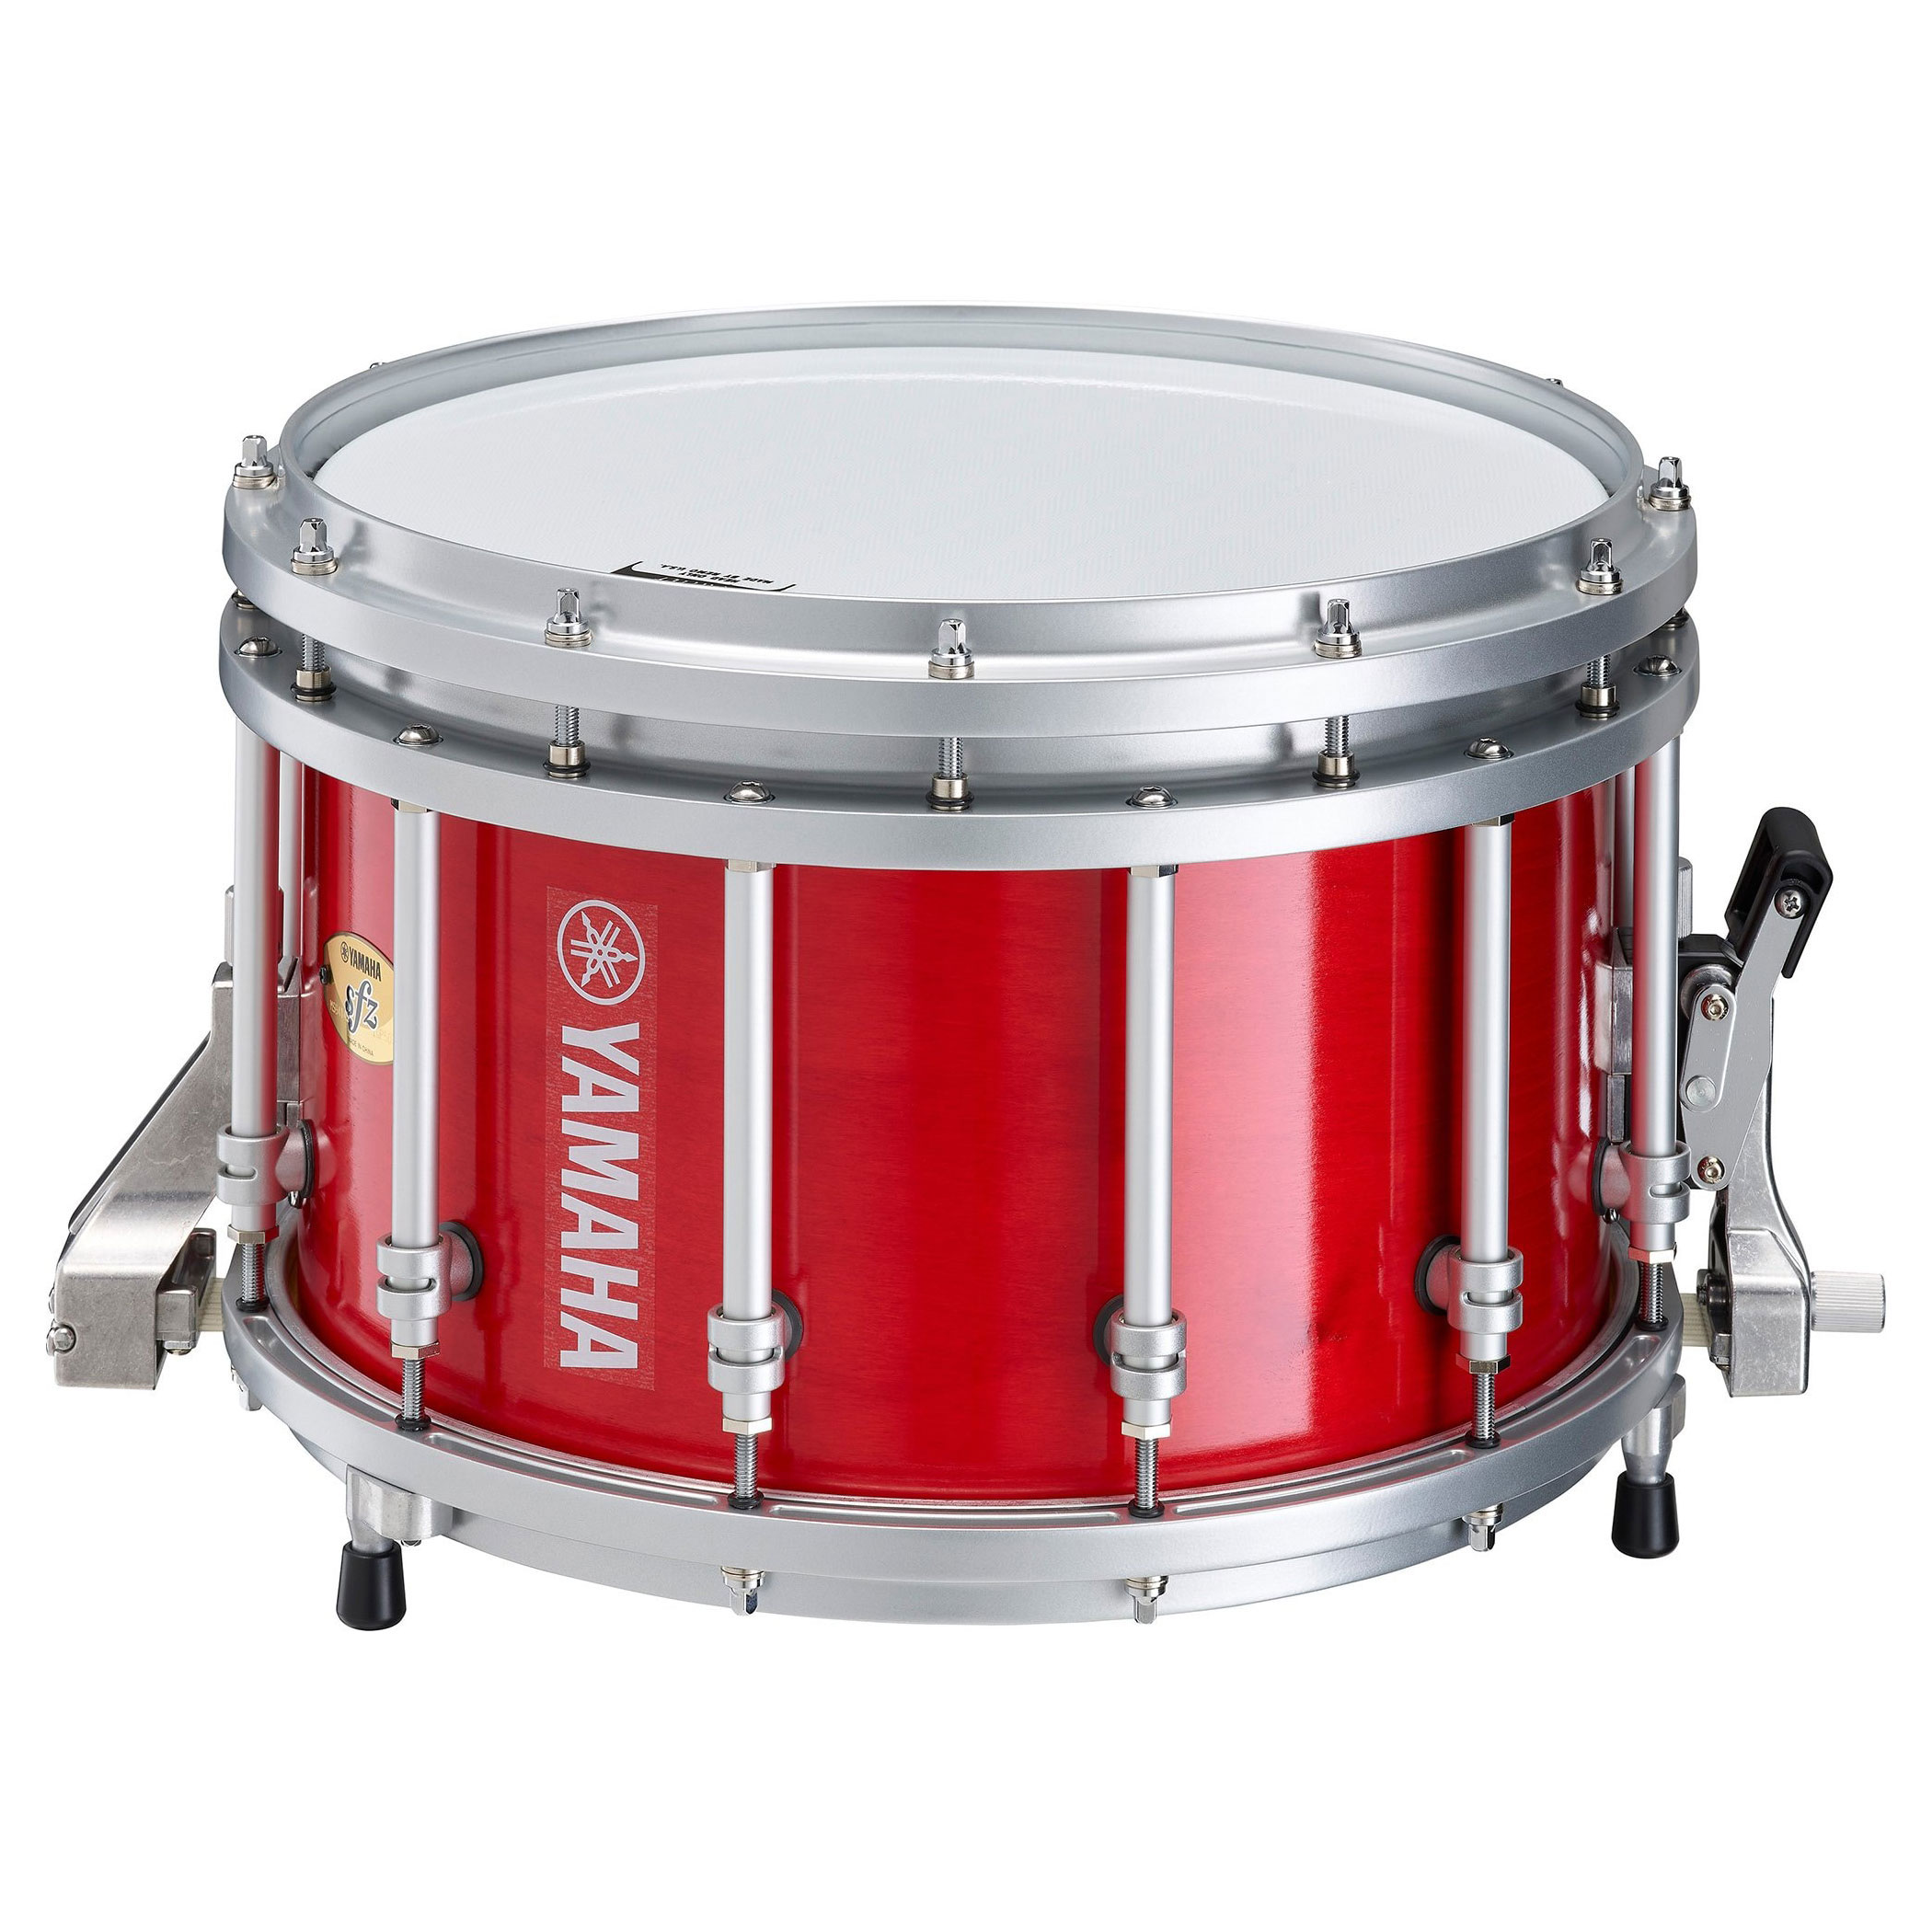 """Yamaha 14"""" x 9"""" 9400 Series SFZ Marching Snare Drum with Standard Hardware"""